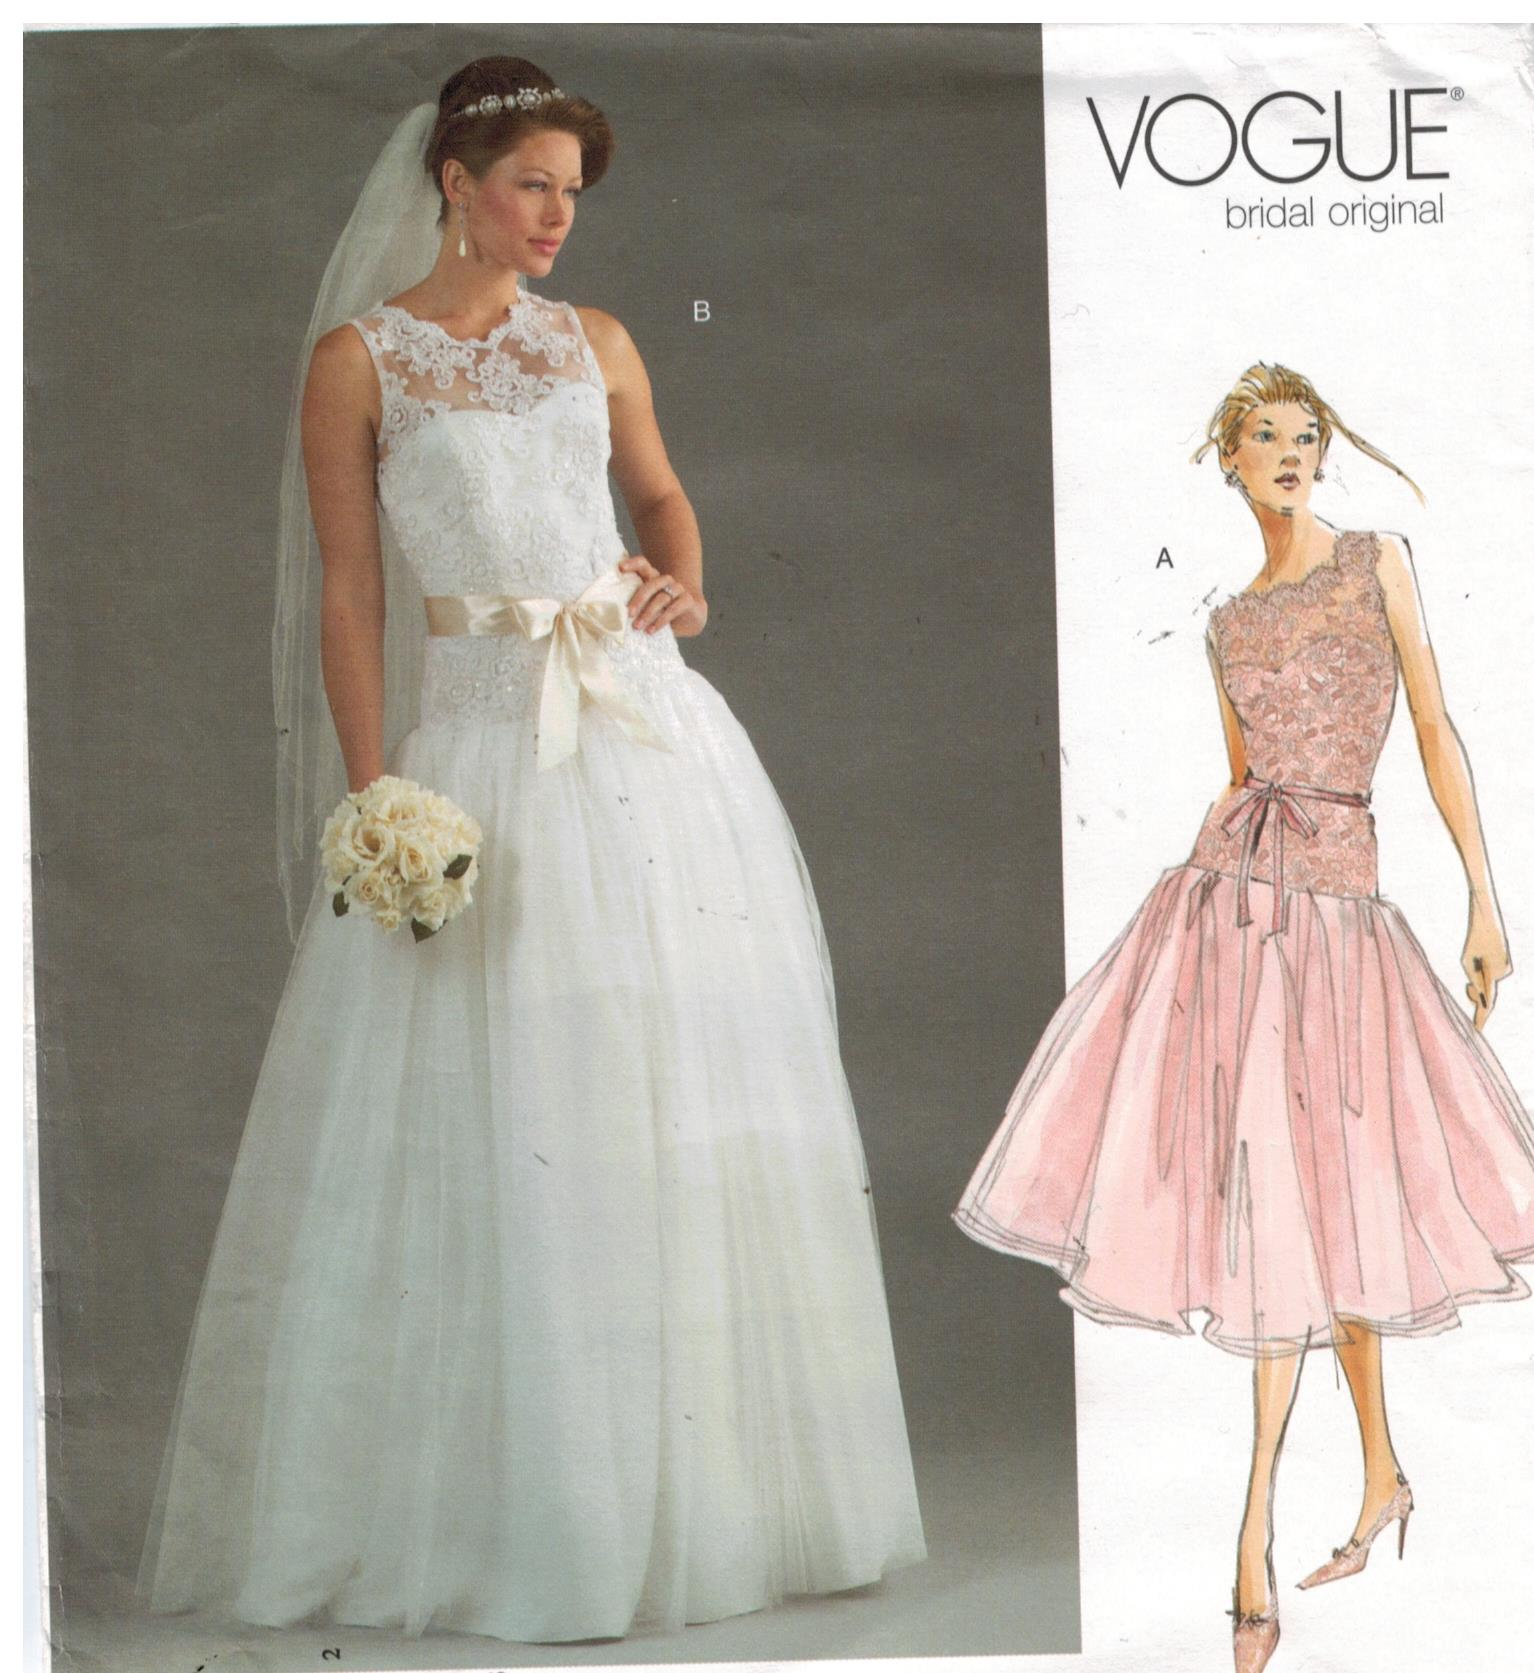 Vogue Pattern 2892 Bridal Original Wedding and Bridesmaid